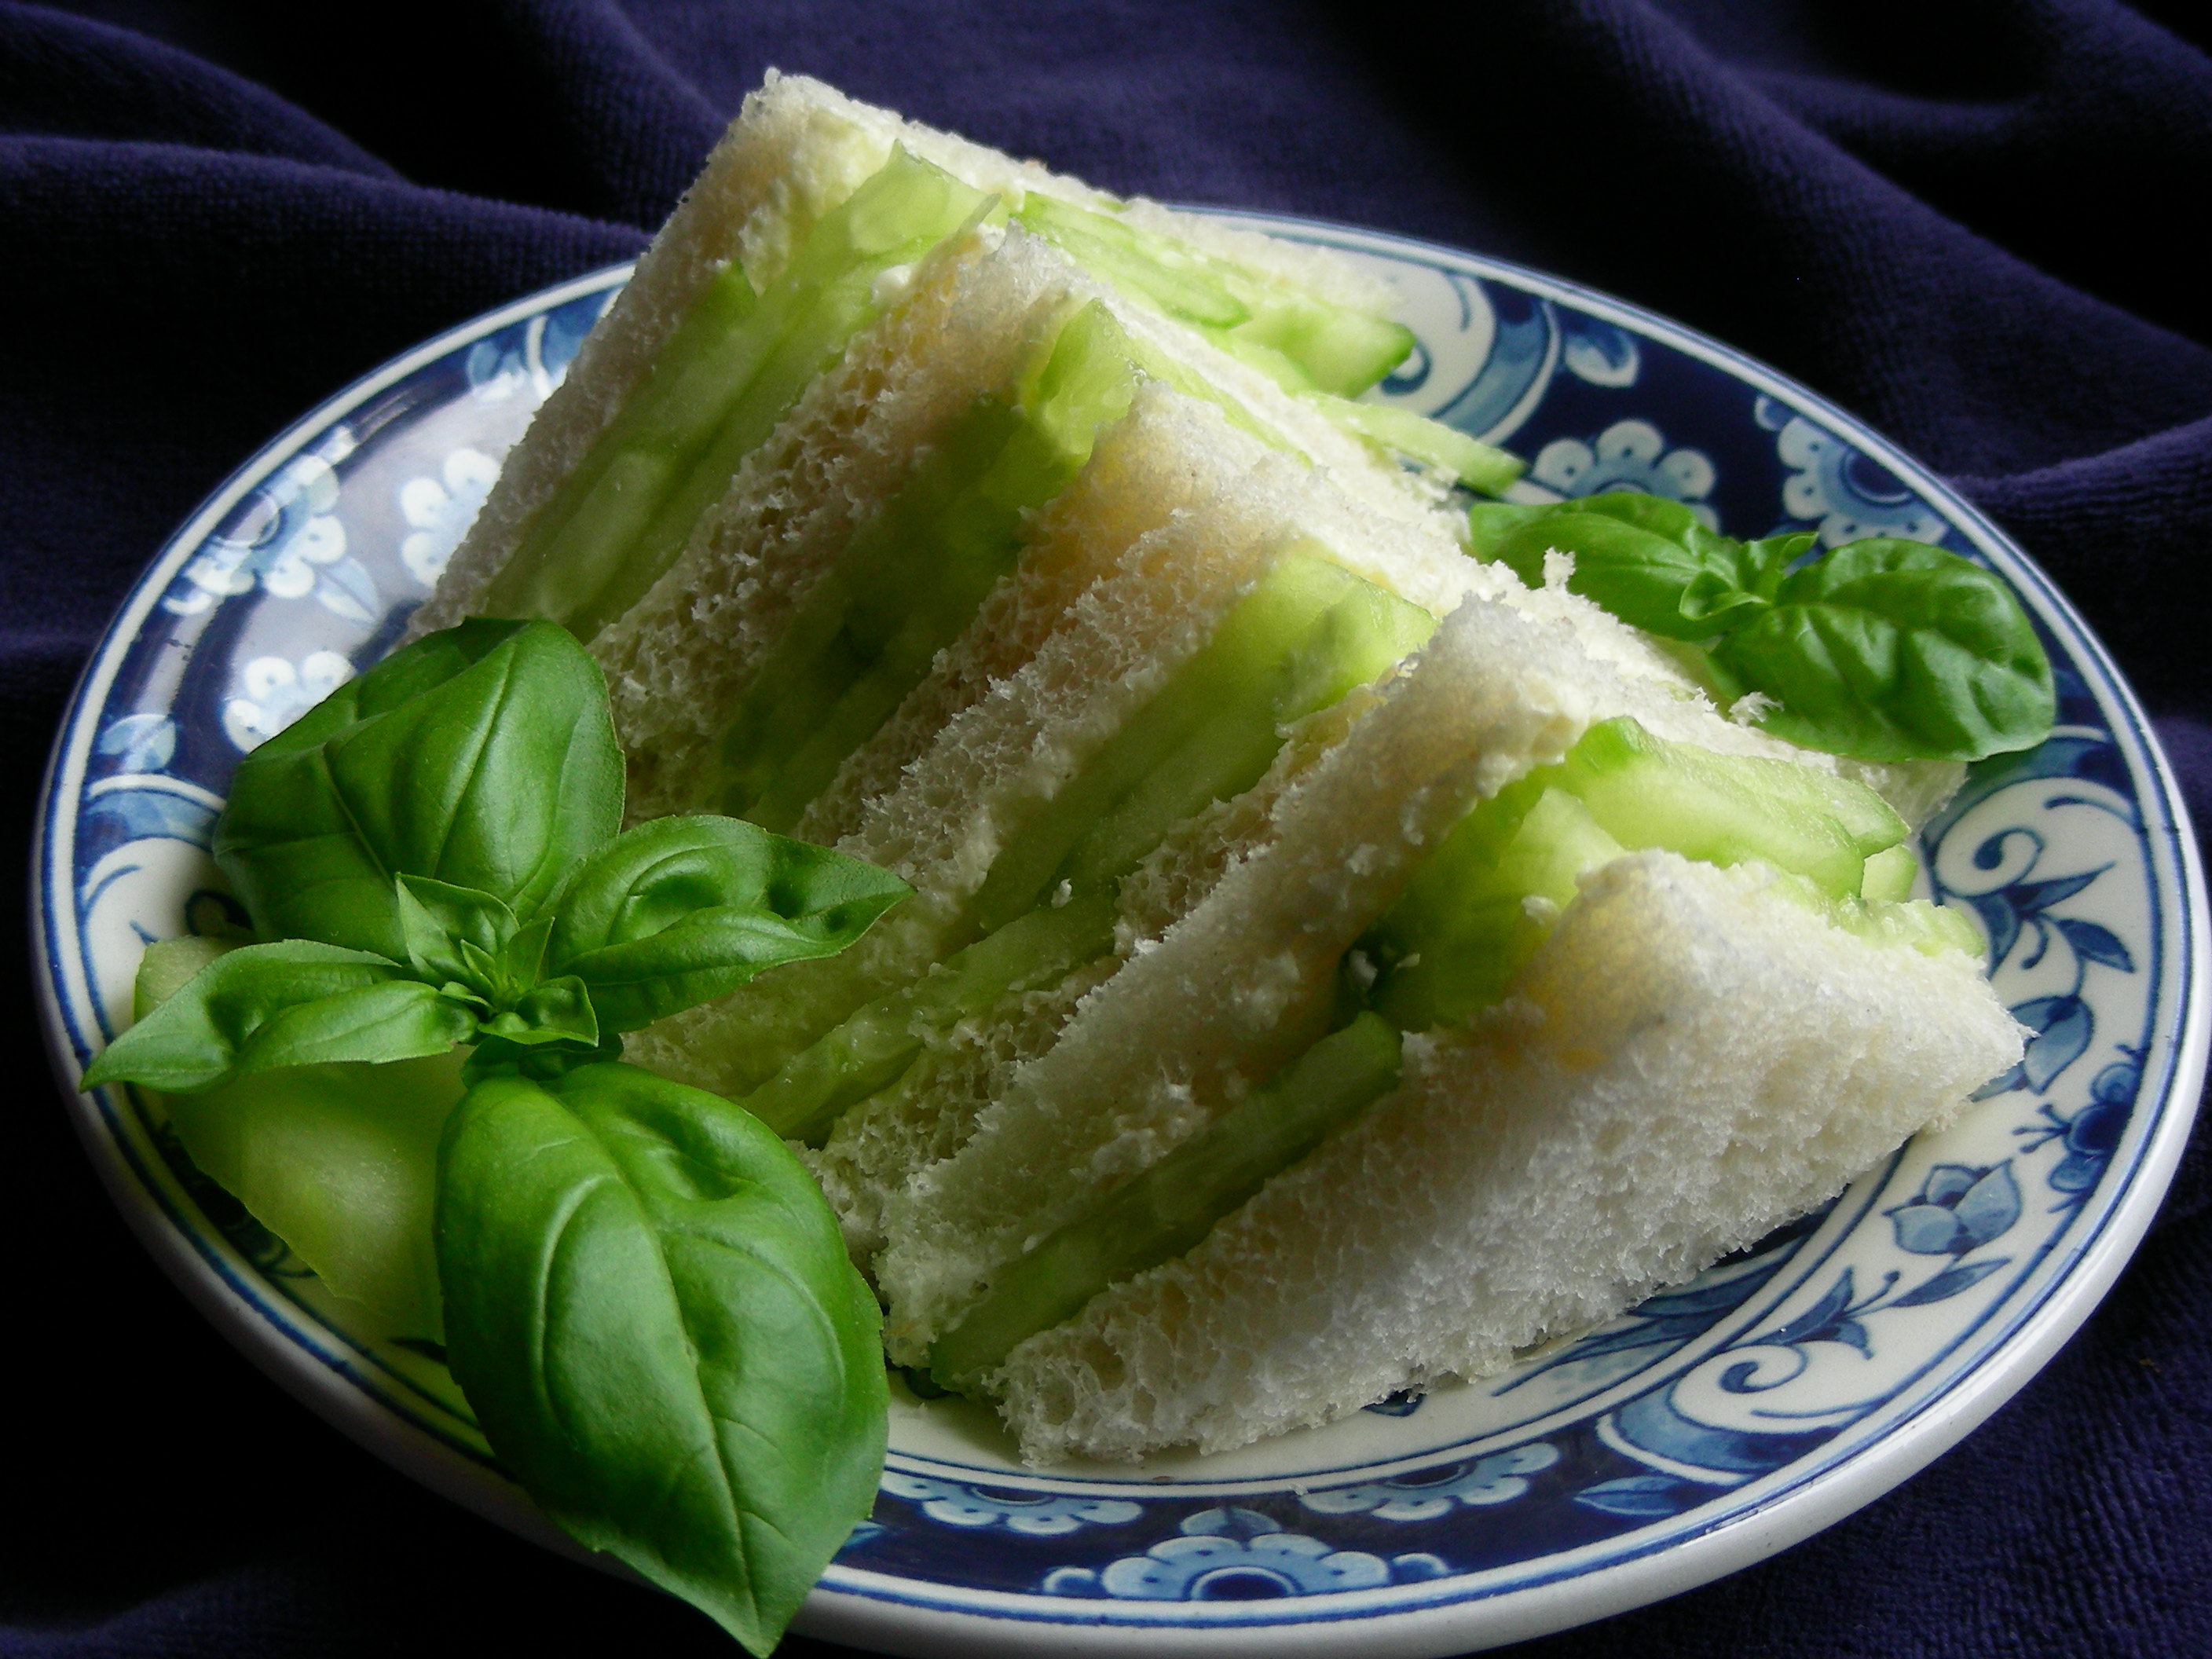 Chicken Cucumber Party Sandwiches